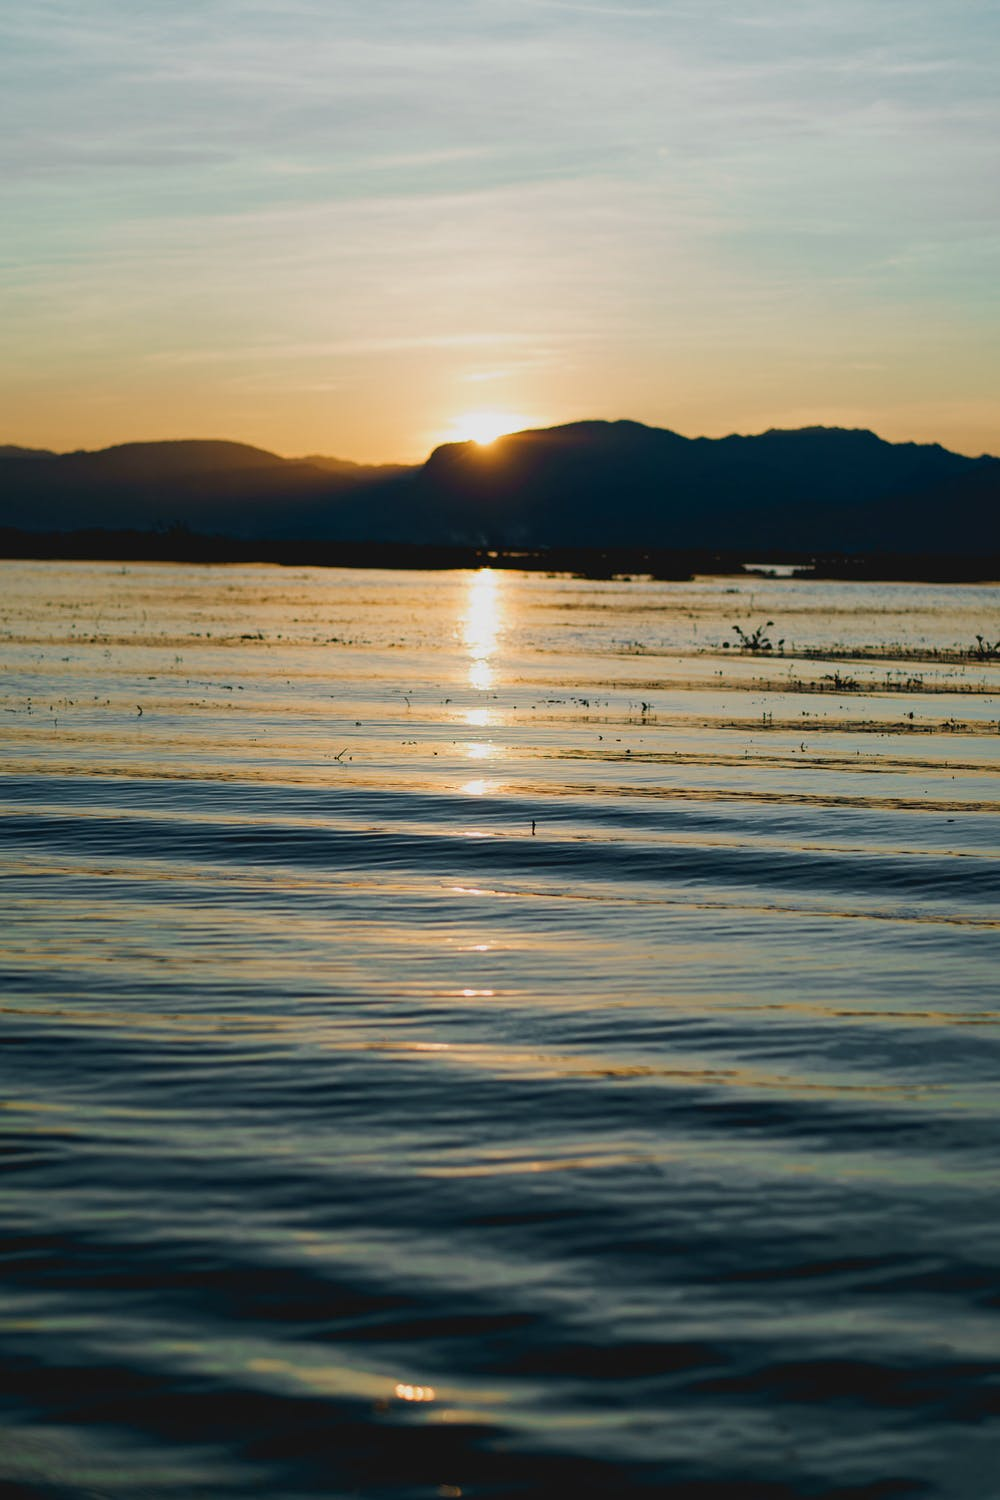 Sunset reflecting in the water along a mountain range at Inle Lake Myanmar